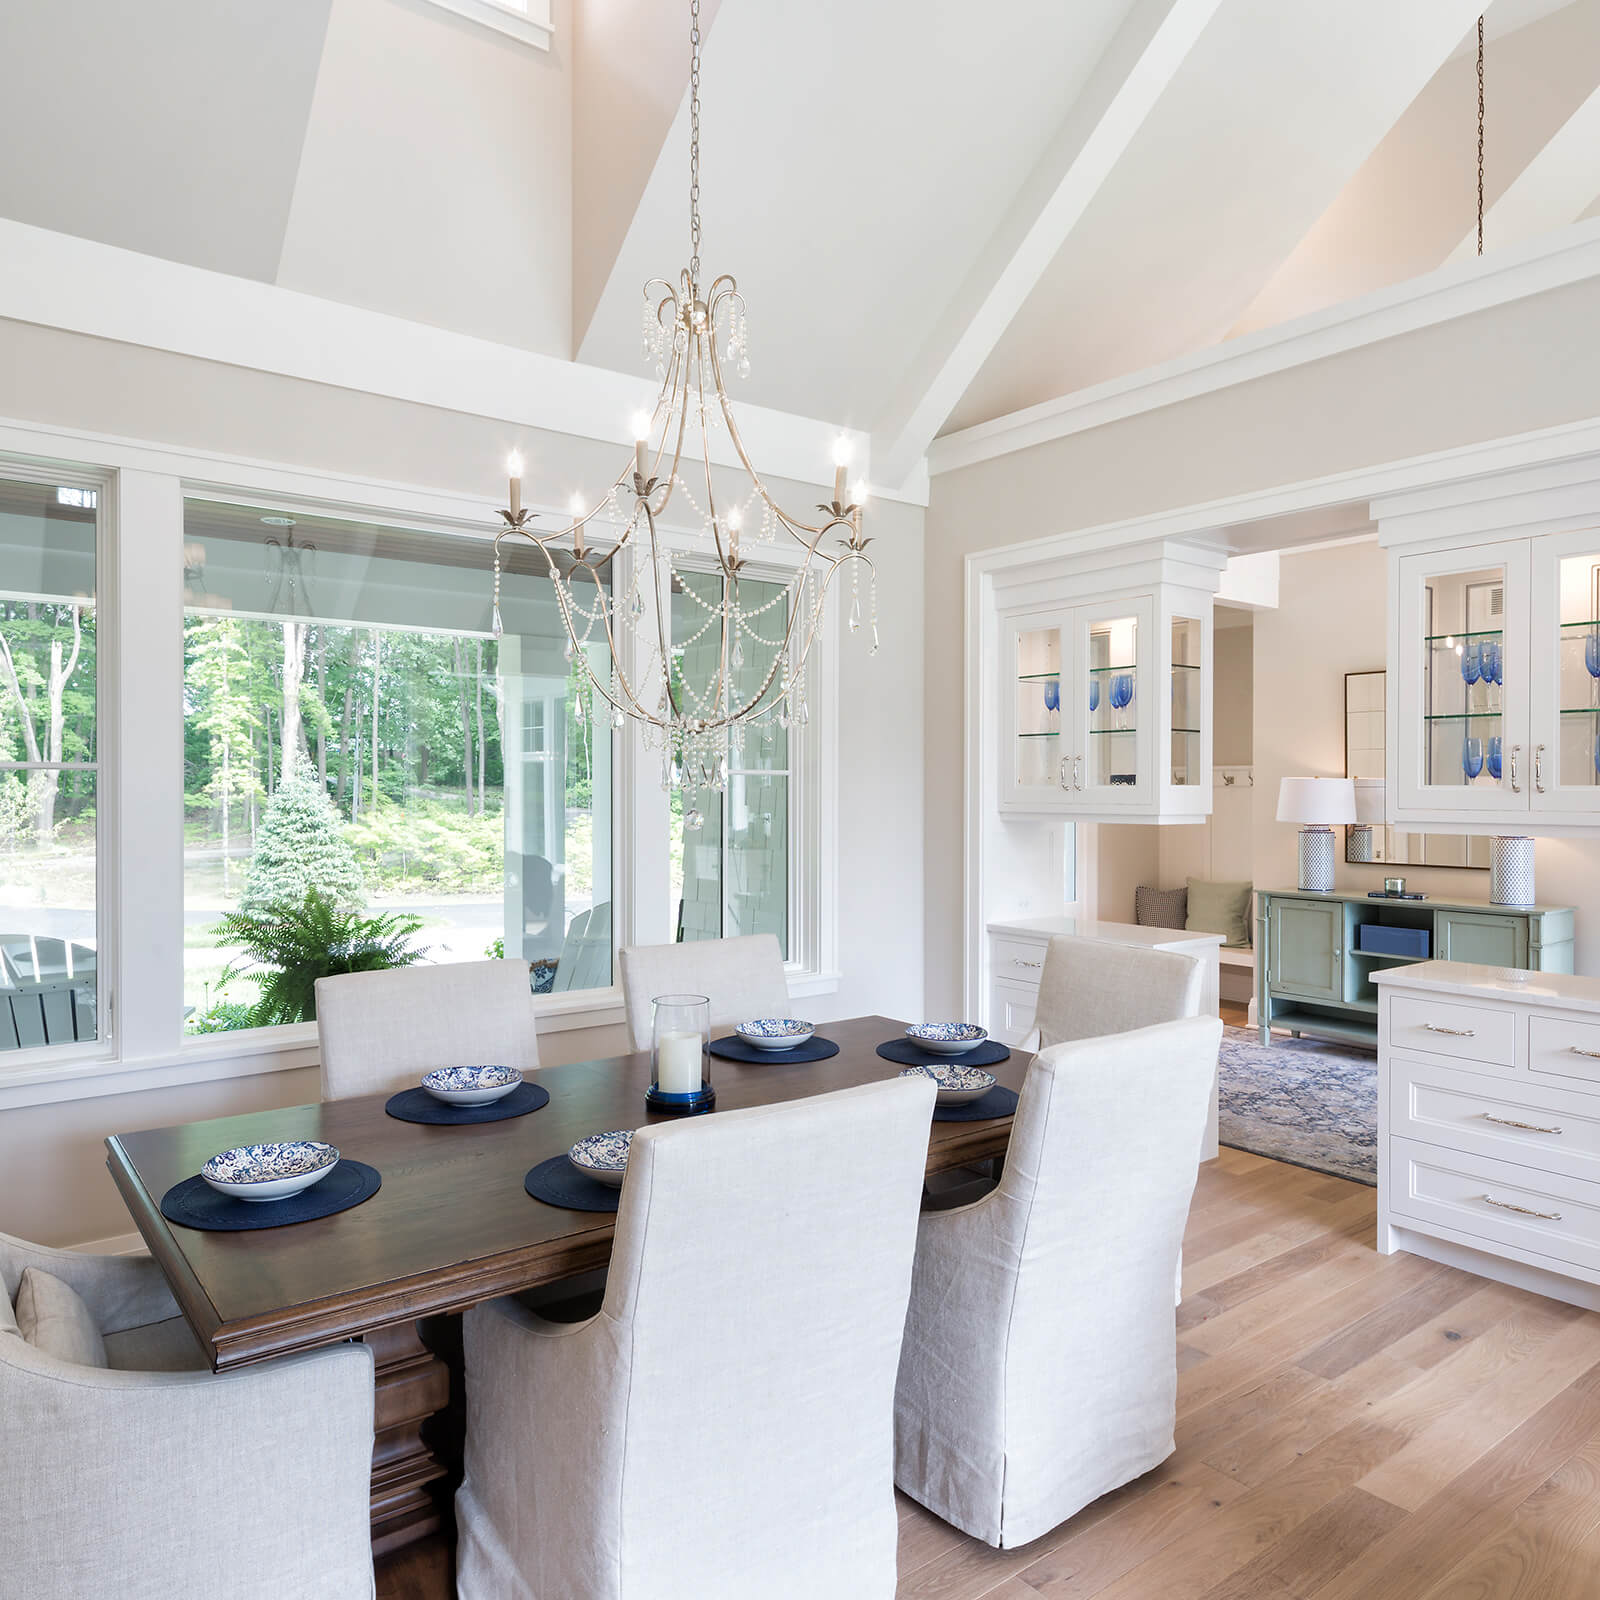 Open concept dining area with Marvin Elevate Casement Windows and Elevate Direct Glaze Windows